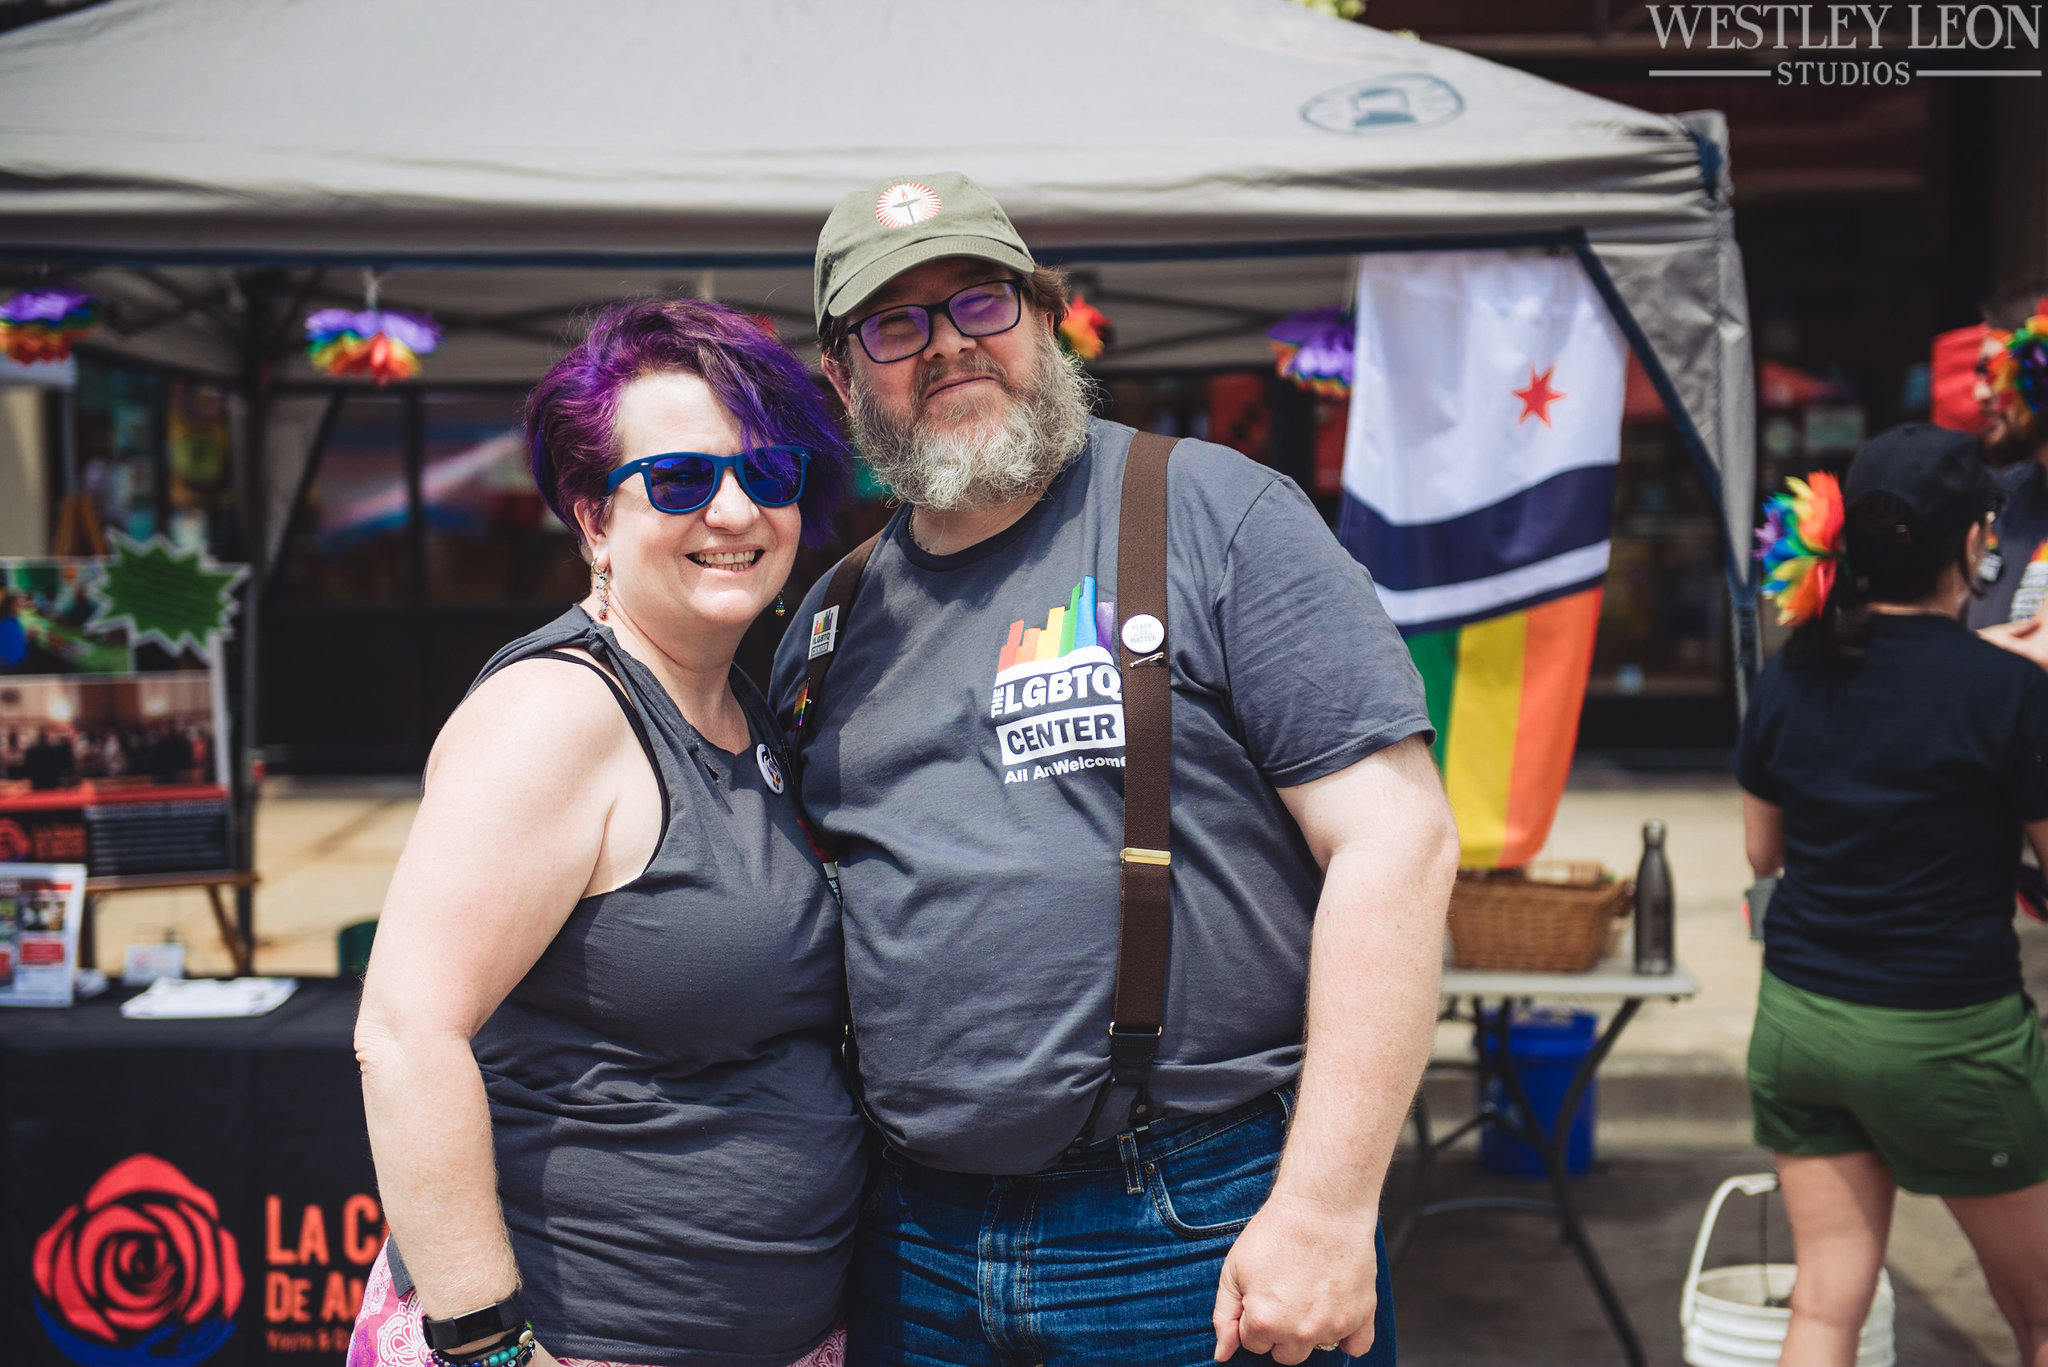 About us - The LGBTQ Center promotes equality, builds community, and increases understanding of lesbian, gay, bisexual, transgender, and queer/questioning (LGBTQ) experiences. We meet these crucial needs through educational resources, support groups, social events, and enriching programming.